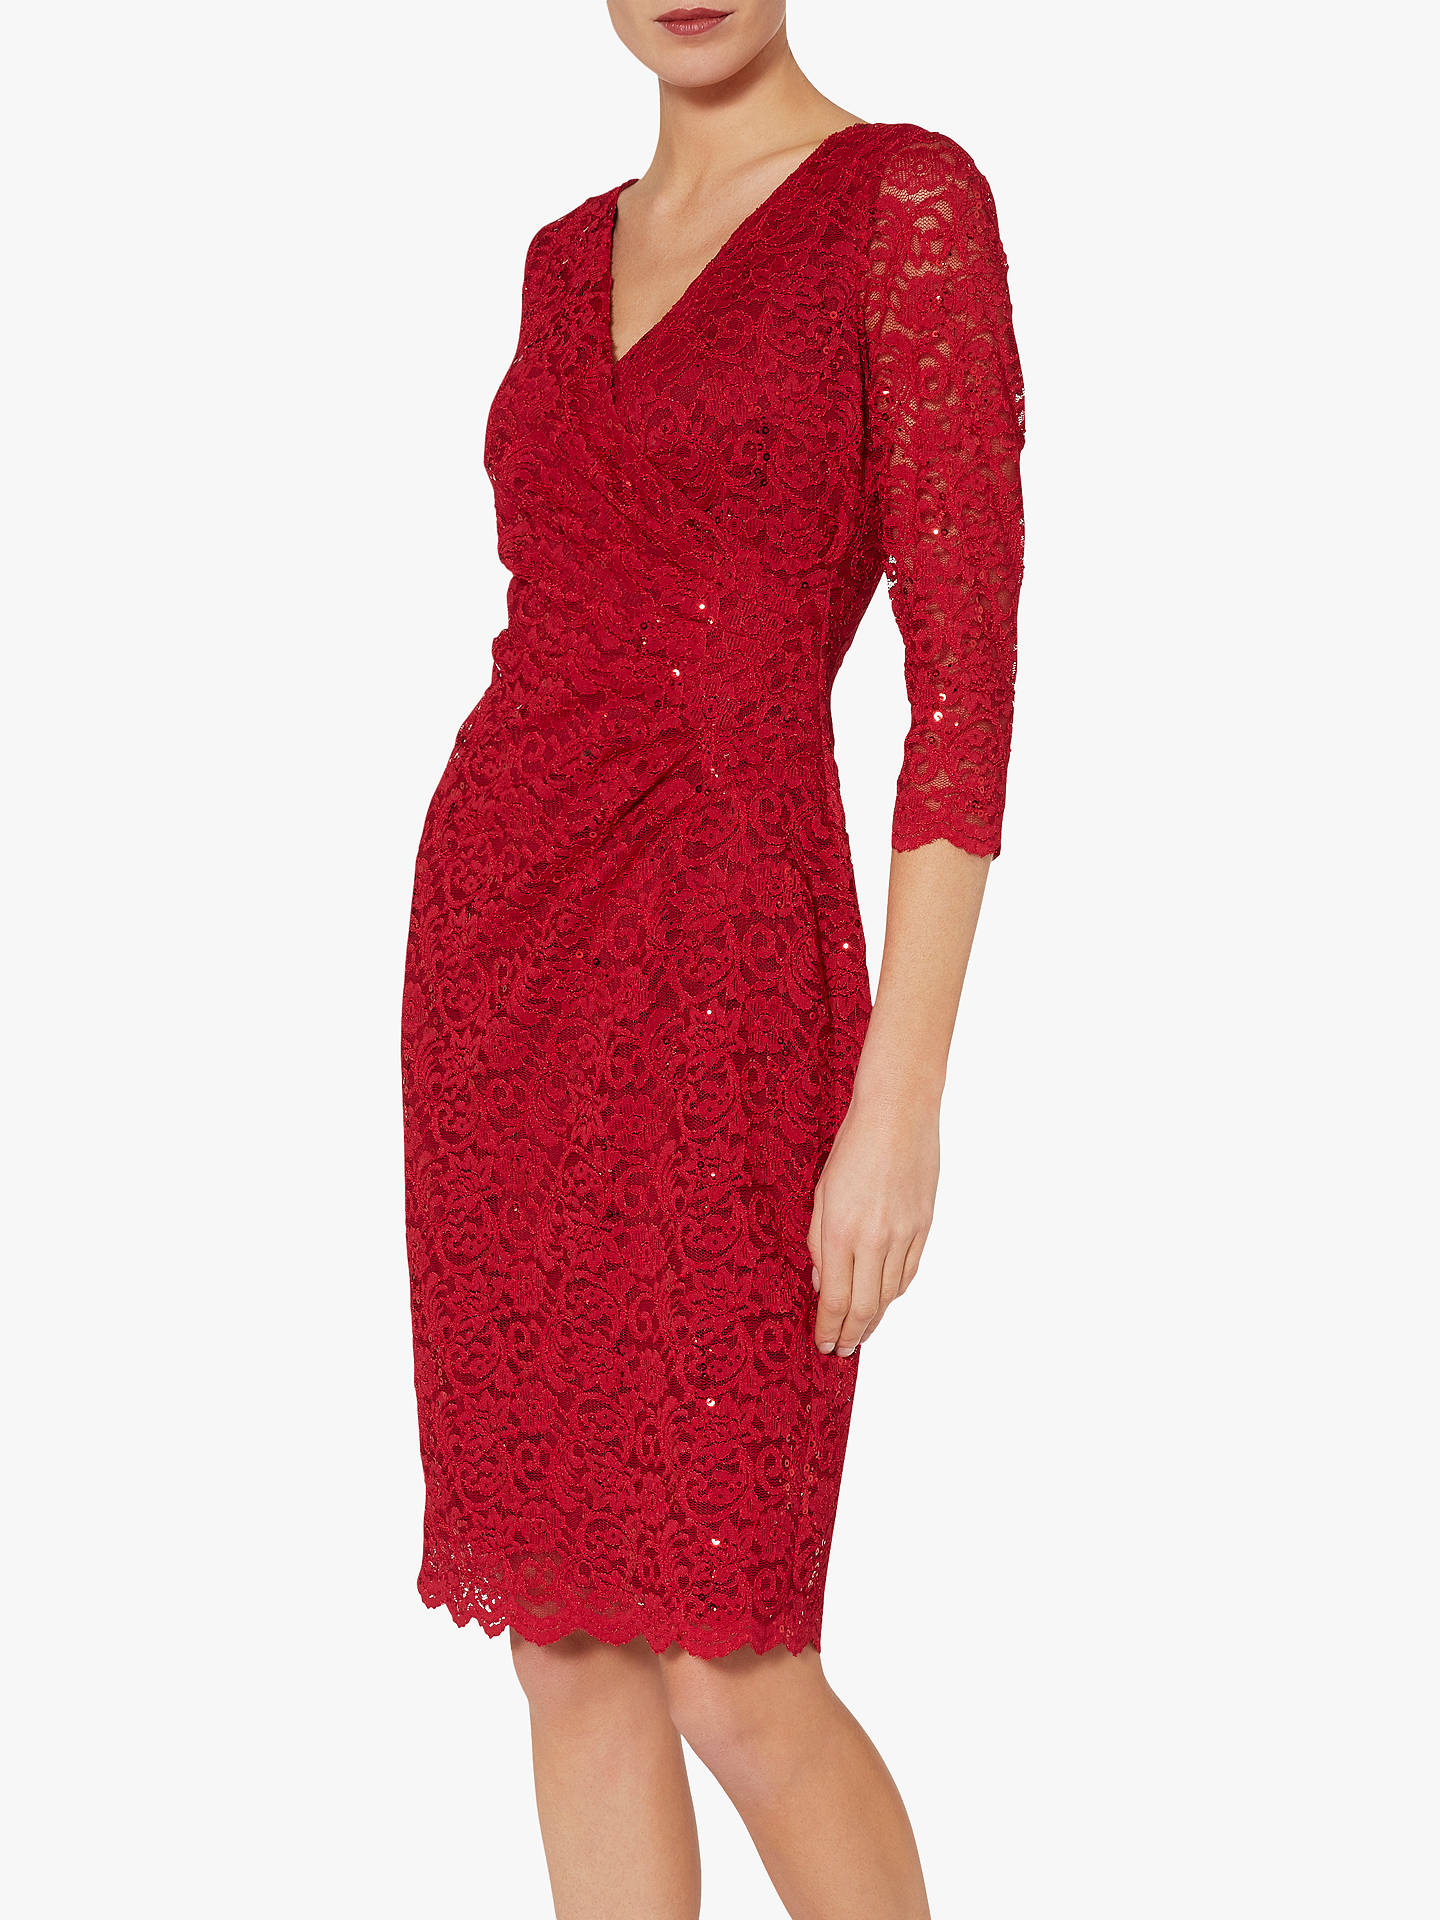 626321fef2a2 Buy Gina Bacconi Aruna Floral Lace Dress